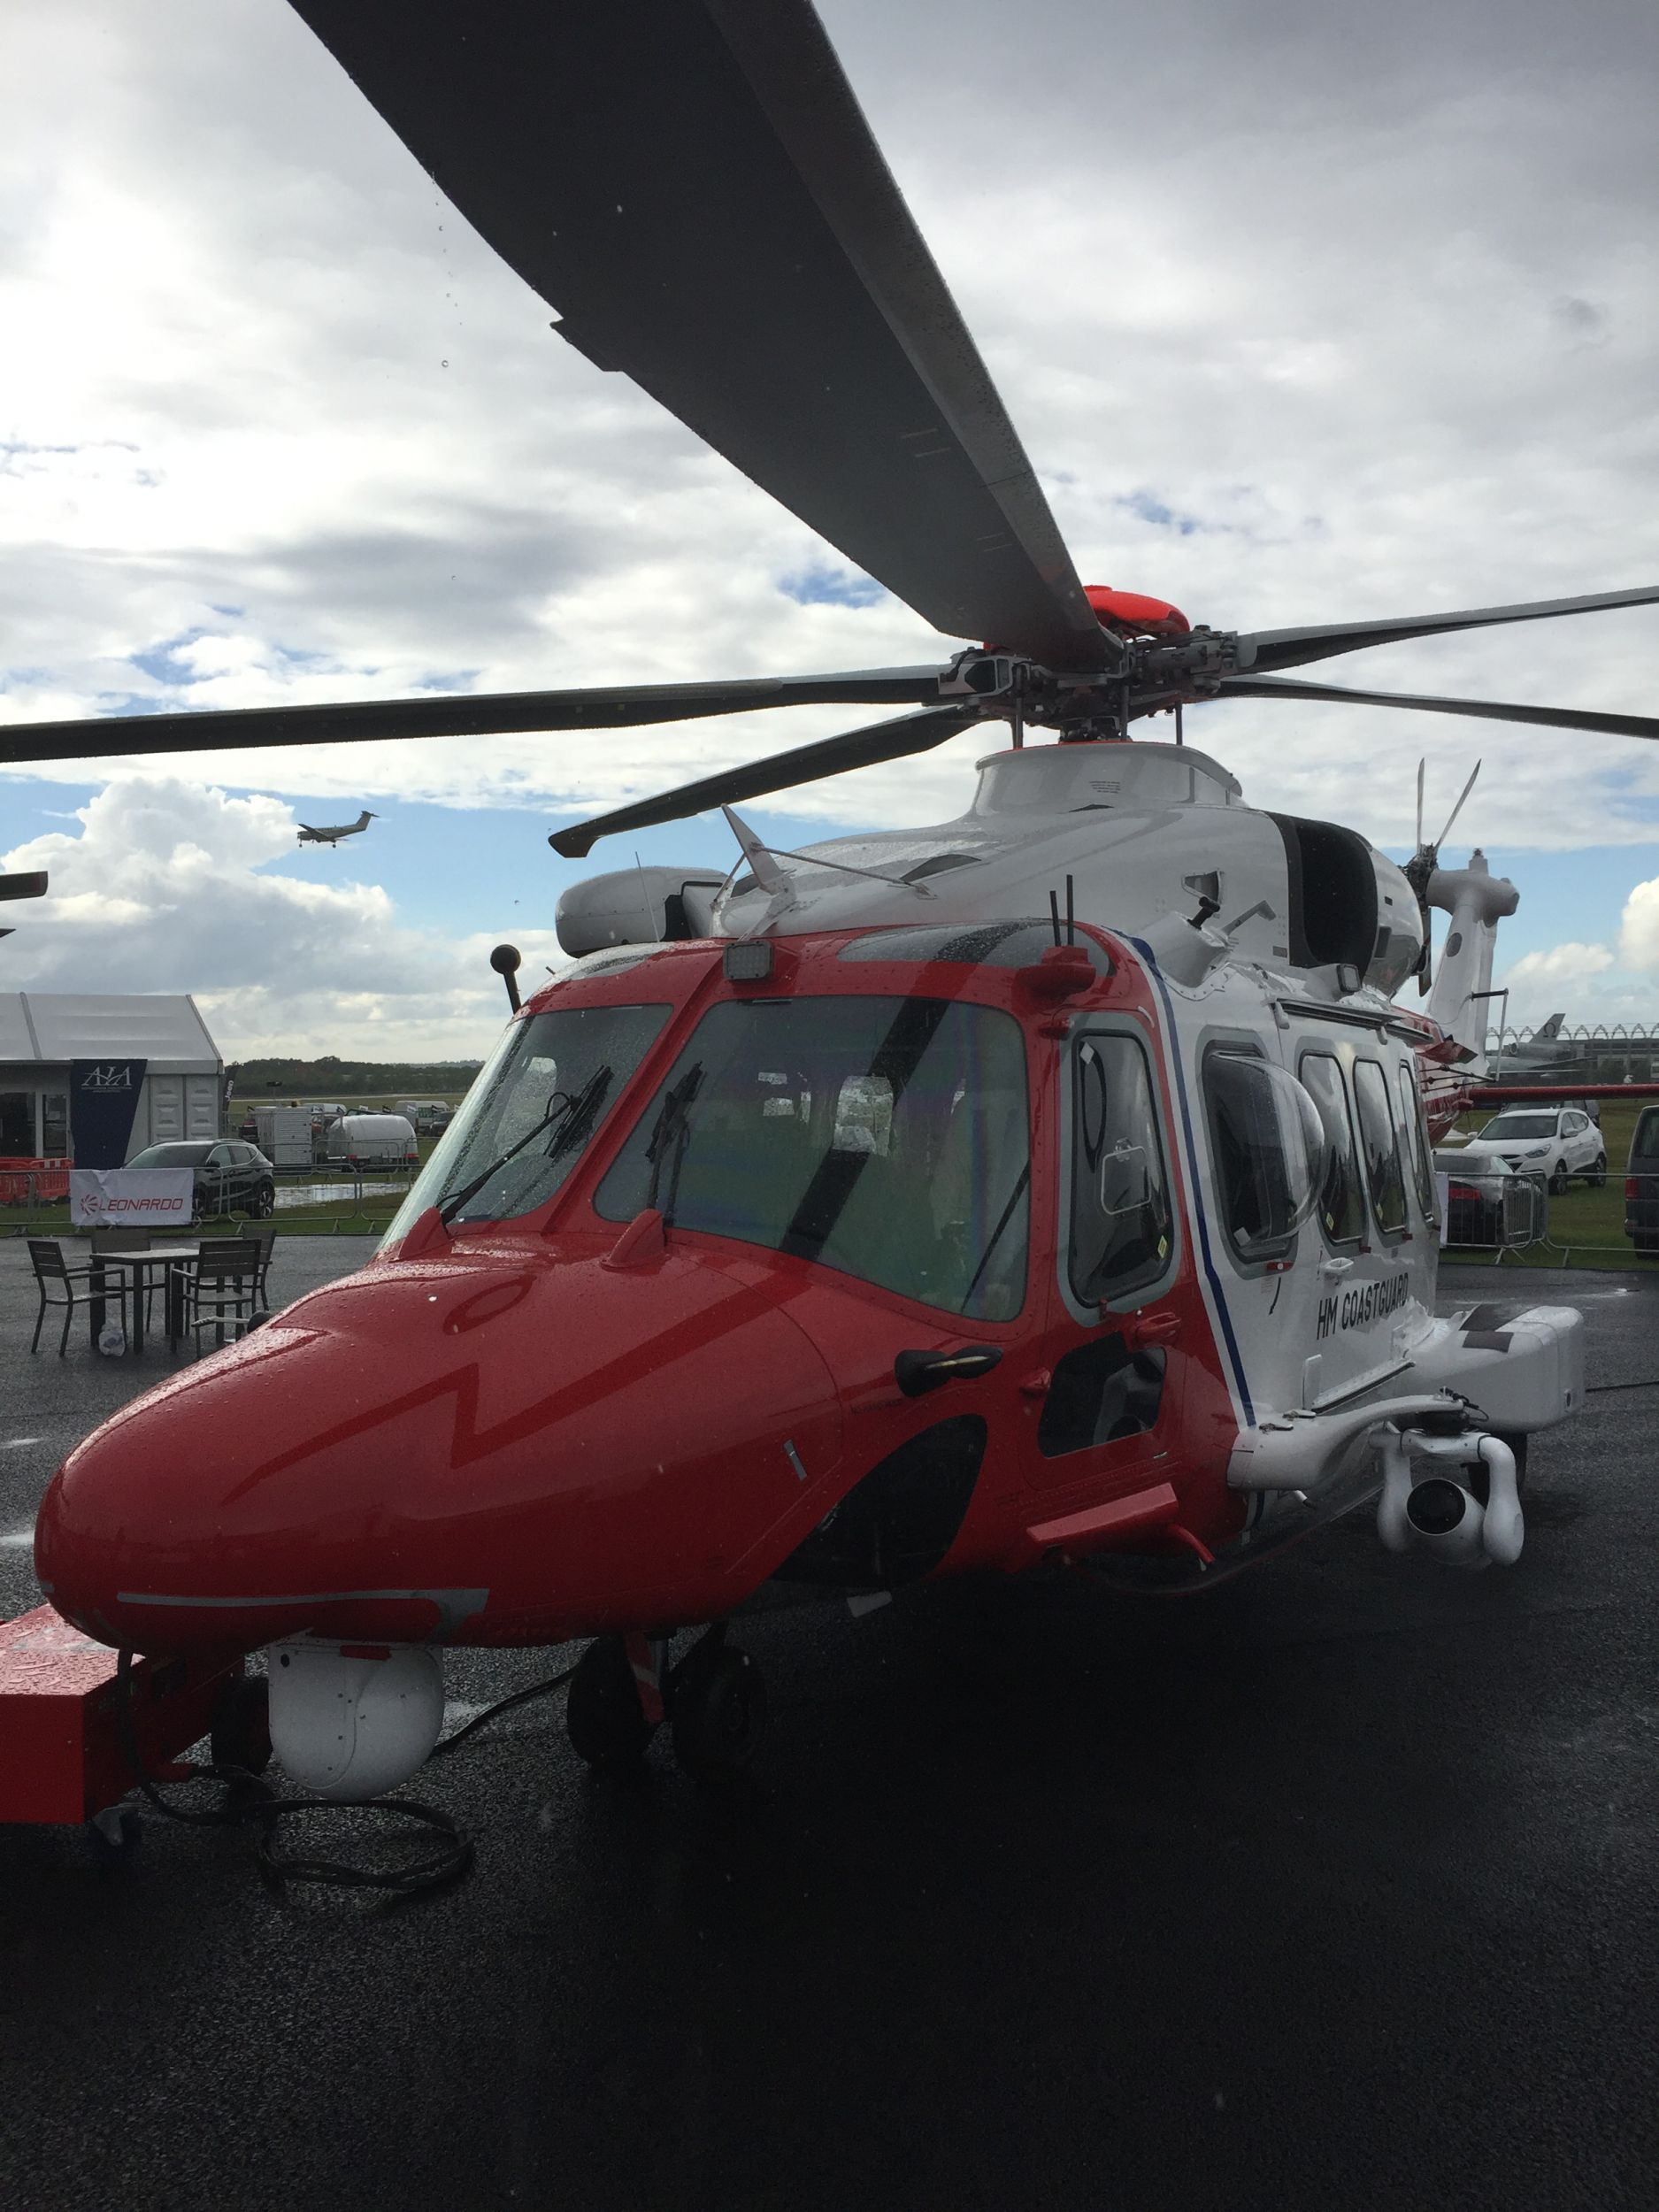 Farnborough Airshow Helicopter